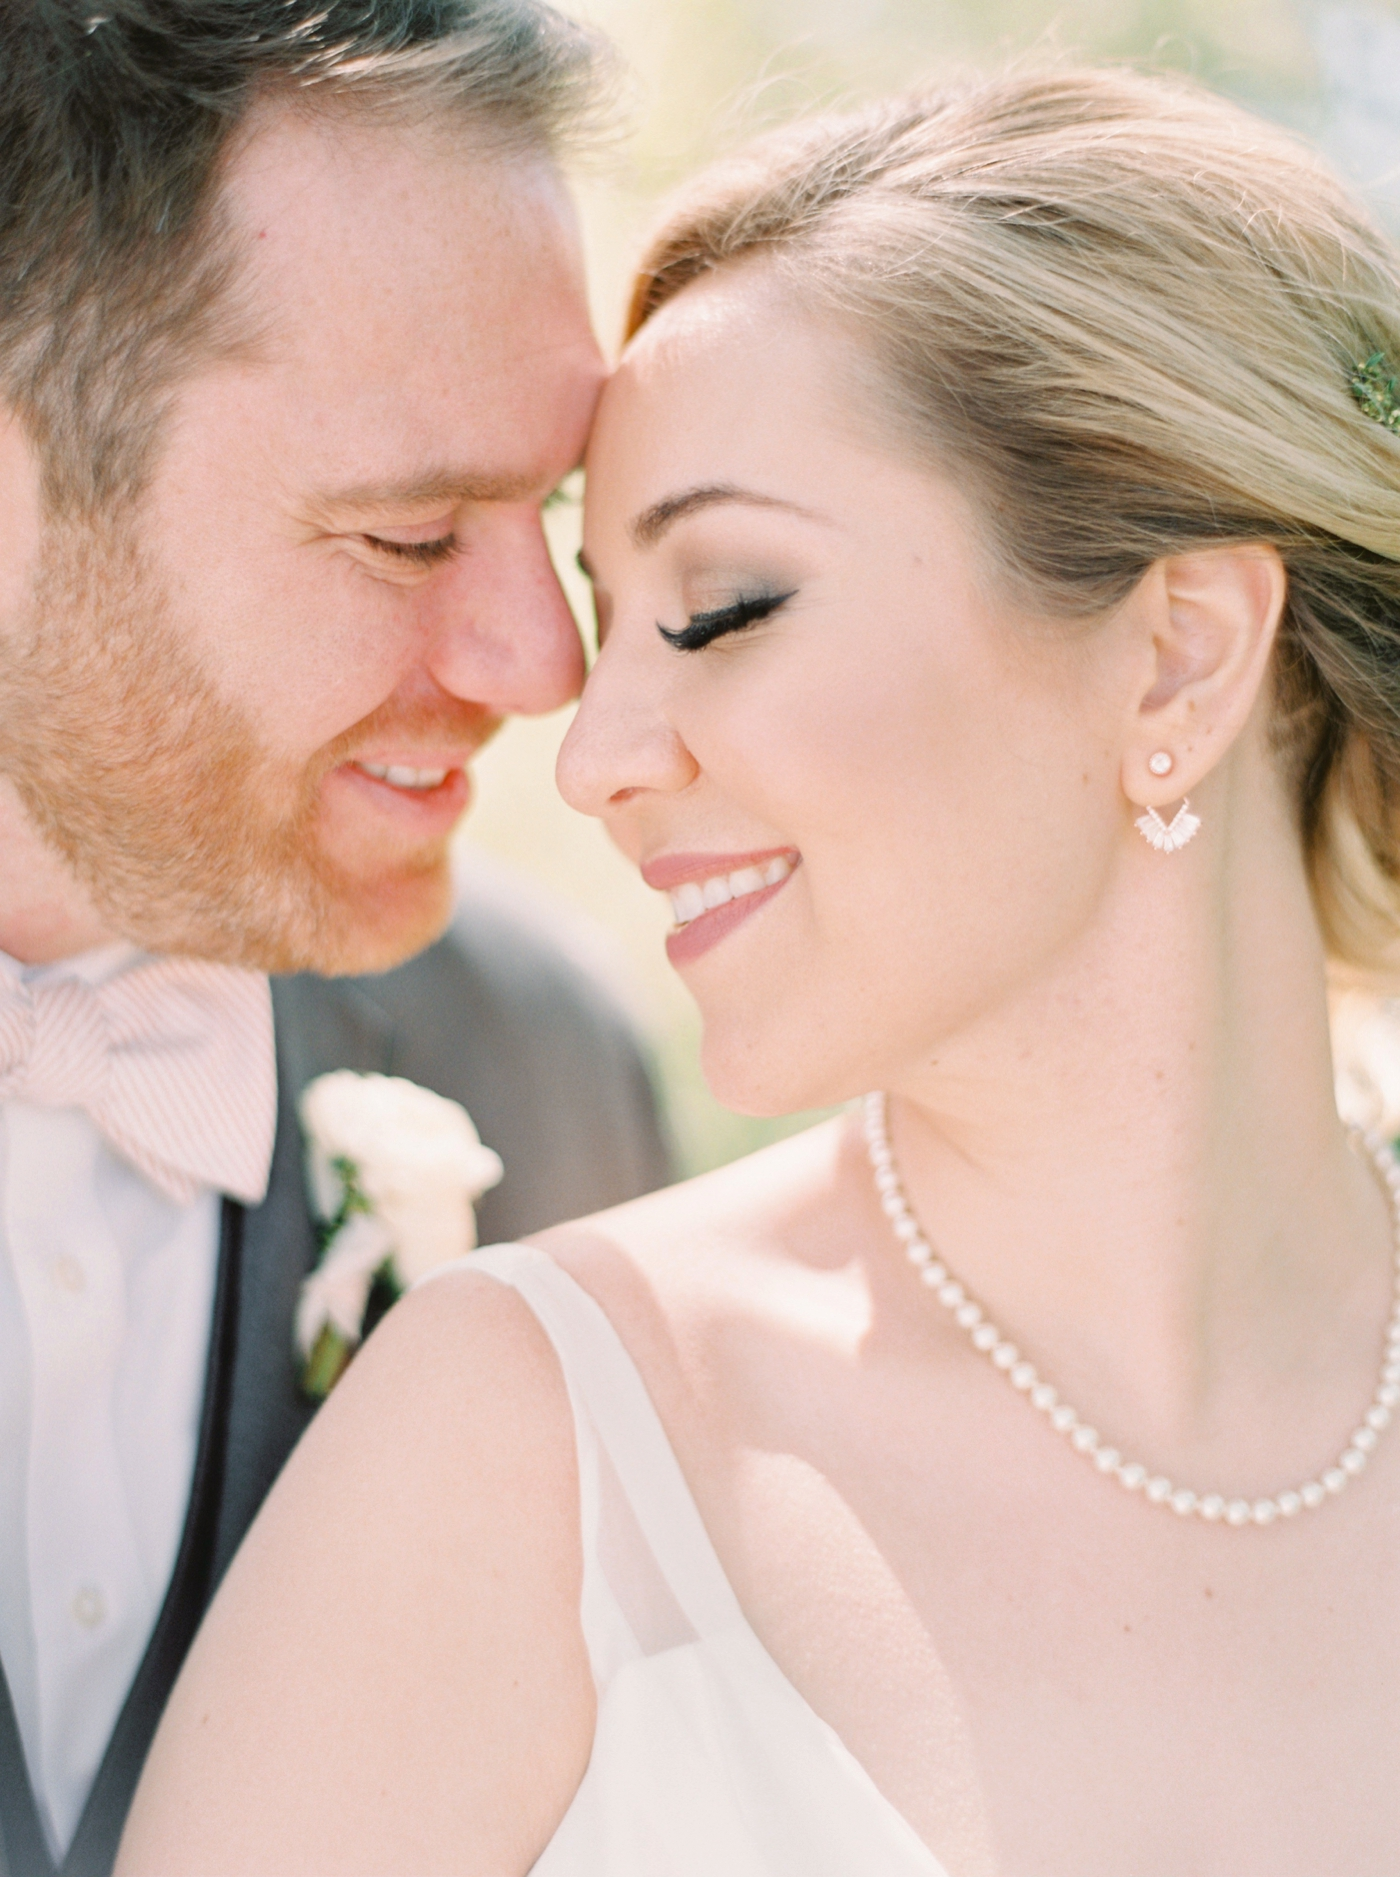 calgary wedding photographers | Ukrainian wedding | justine milton fine art photographer | bride and groom spring wedding portraits